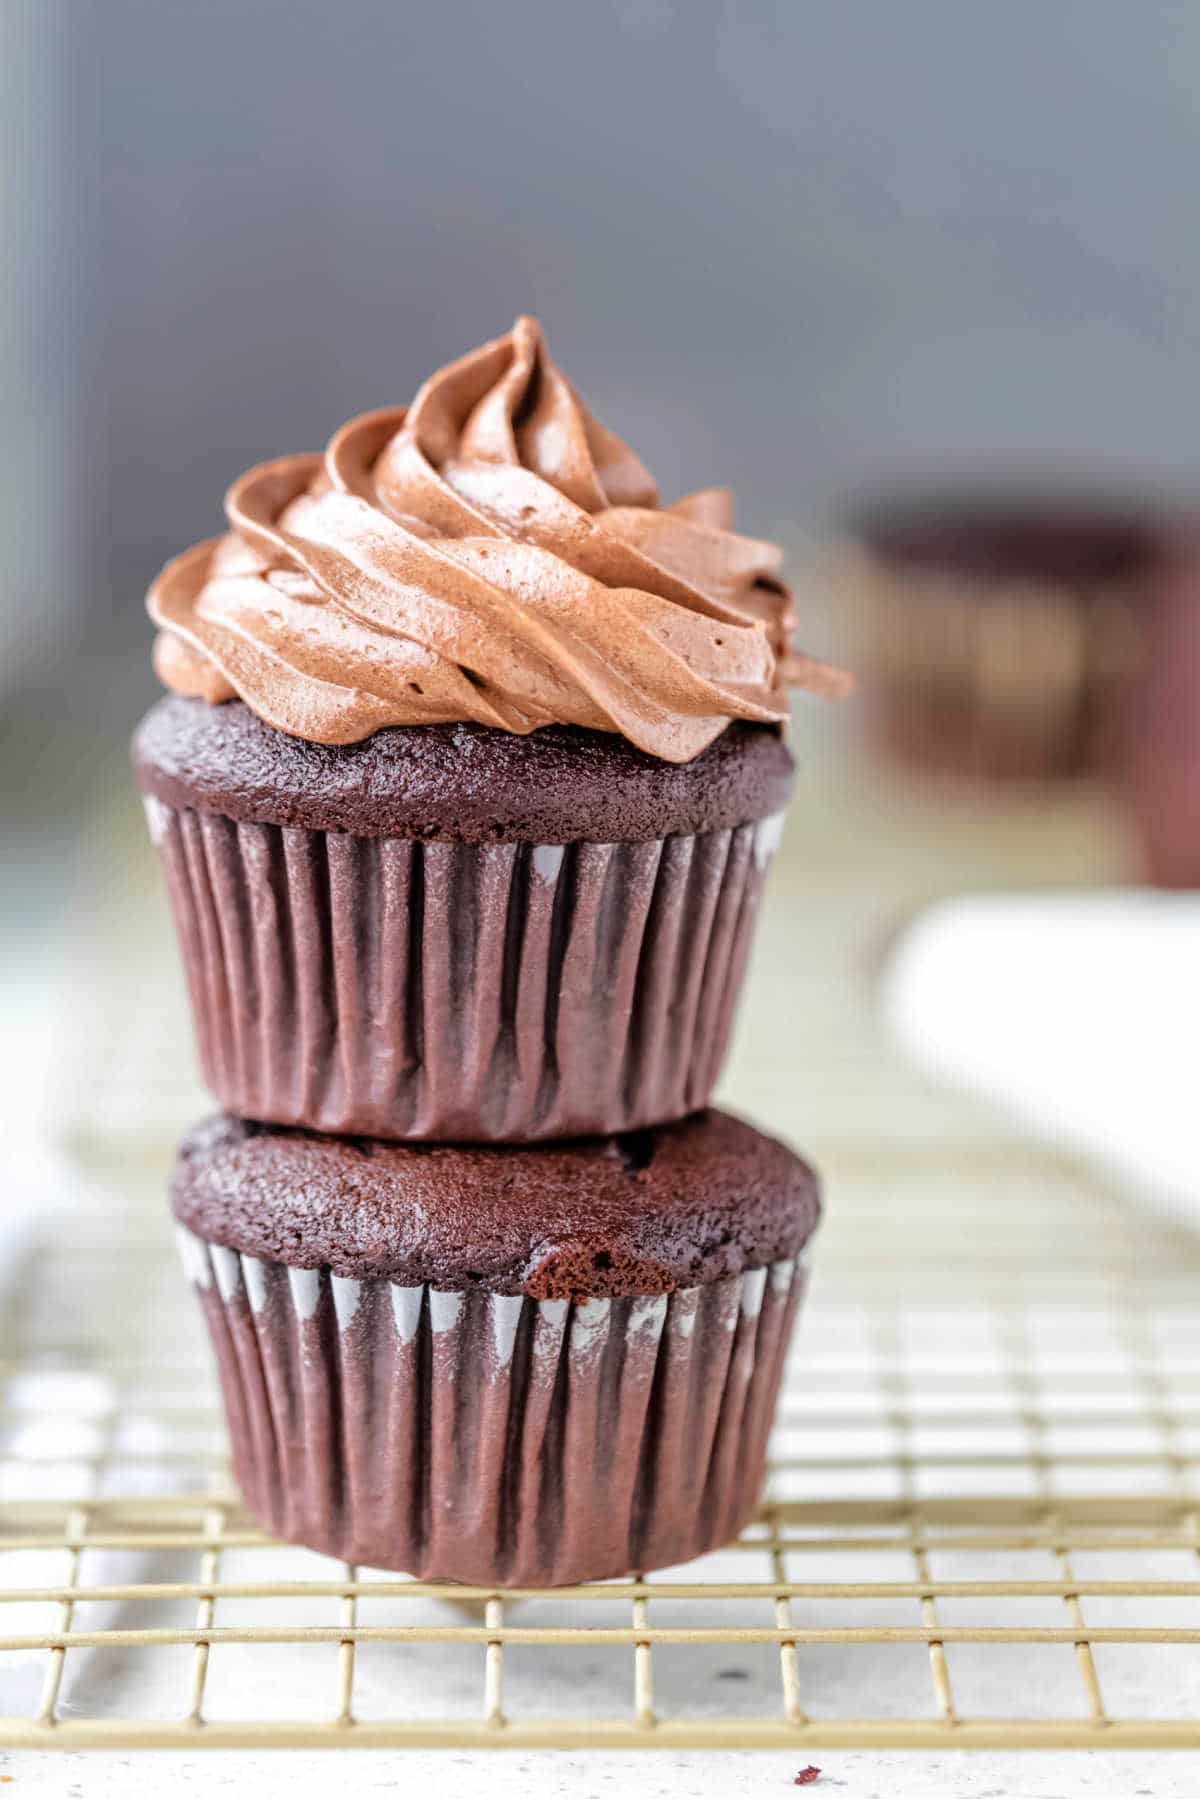 A frosted cupcake sitting on an unfrosted chocolate cupcake.